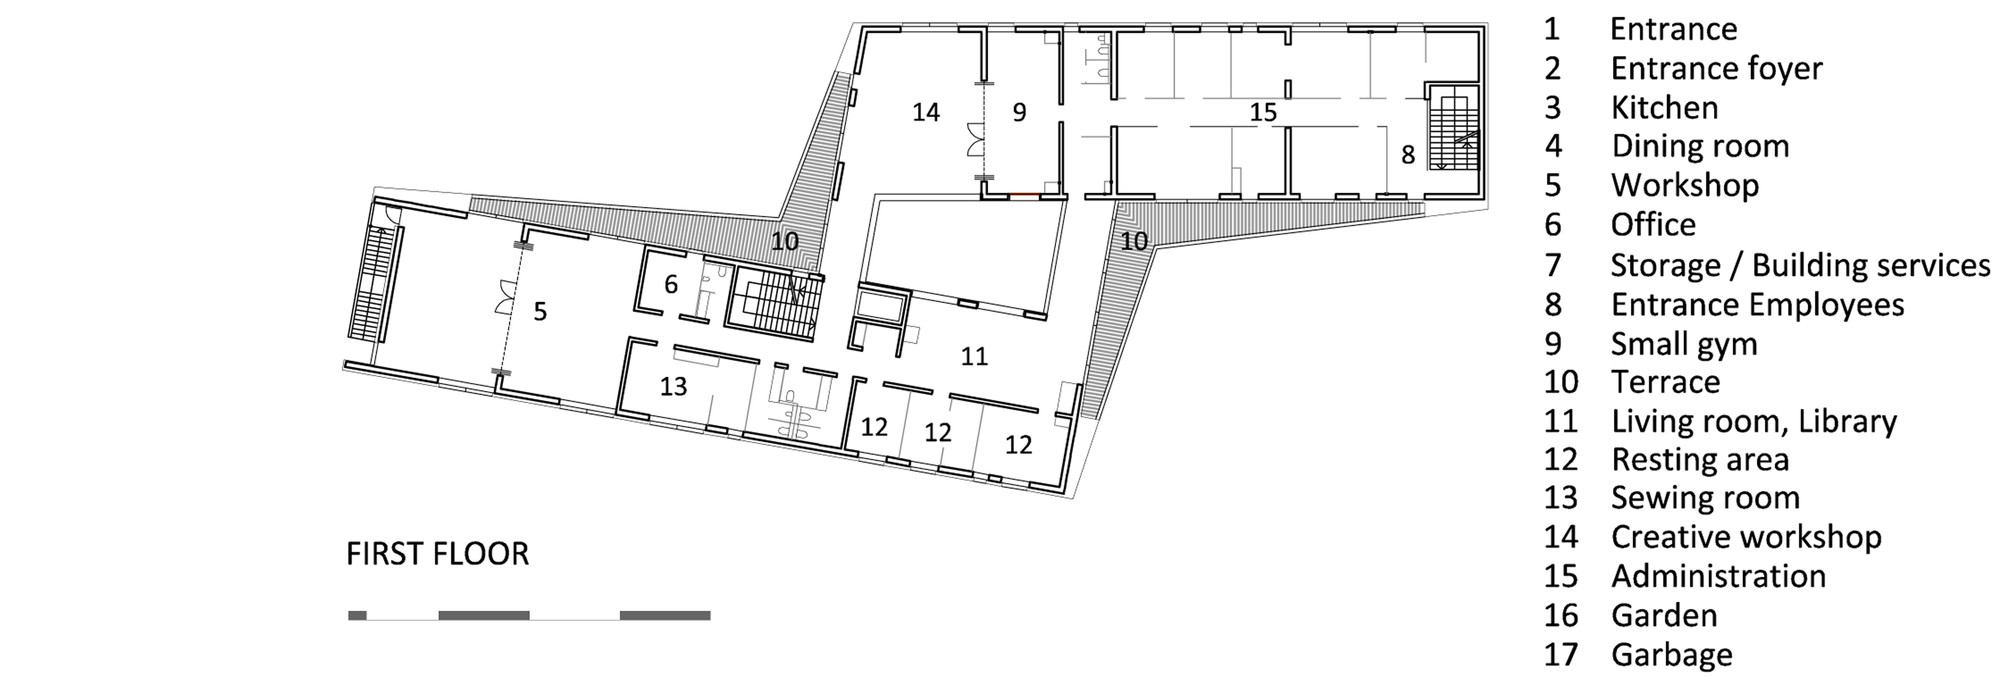 Pleasing Gallery Of Occupational Activity Center Ince Menge  Jereb In  With Exciting Occupational Activity Center Ince Mengefirst Floor Plan With Nice Trenance Gardens Newquay Also Garden Furniture Sofa In Addition Covent Garden Venue Hire And Room And Garden As Well As Rutland Garden Centre Additionally Wild Cafe Covent Garden From Archdailycom With   Exciting Gallery Of Occupational Activity Center Ince Menge  Jereb In  With Nice Occupational Activity Center Ince Mengefirst Floor Plan And Pleasing Trenance Gardens Newquay Also Garden Furniture Sofa In Addition Covent Garden Venue Hire From Archdailycom